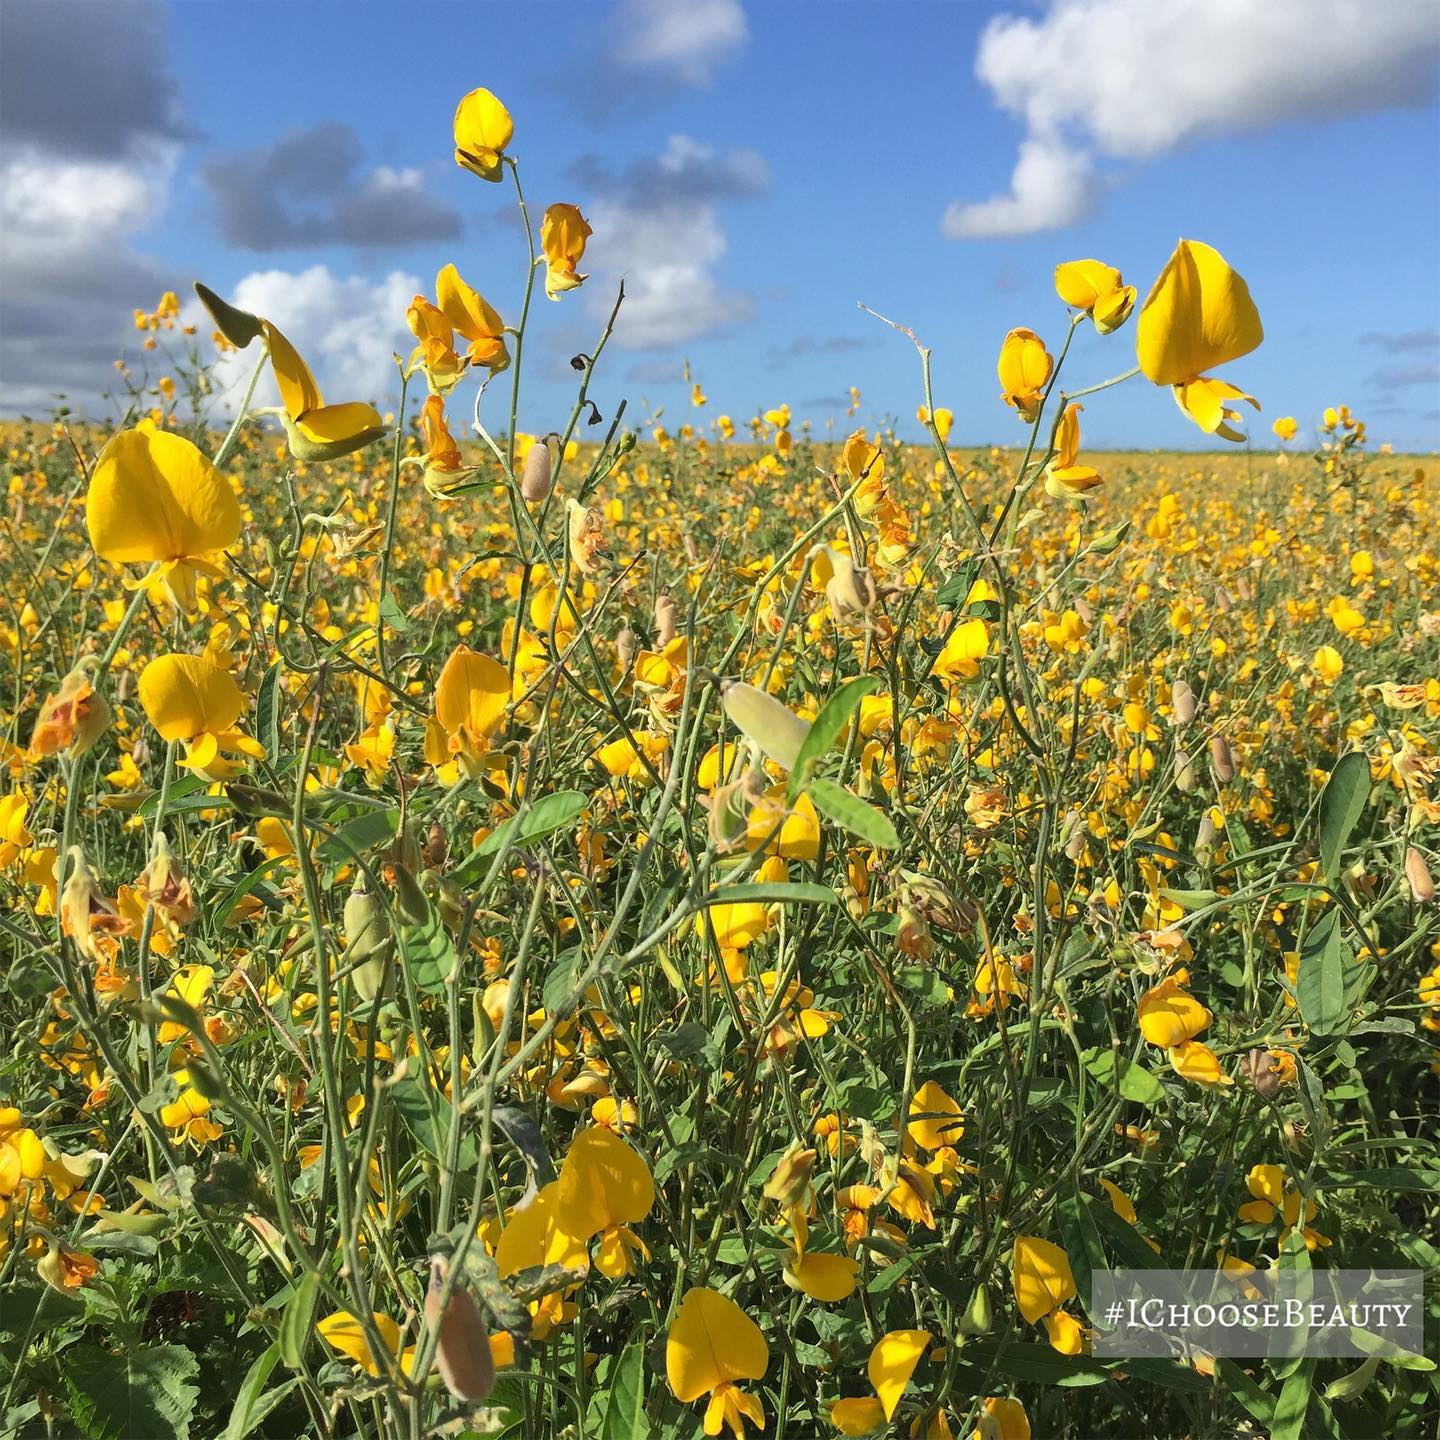 Yellow flowers for days! This field is breathtaking.  #ichoosebeauty Day 2694